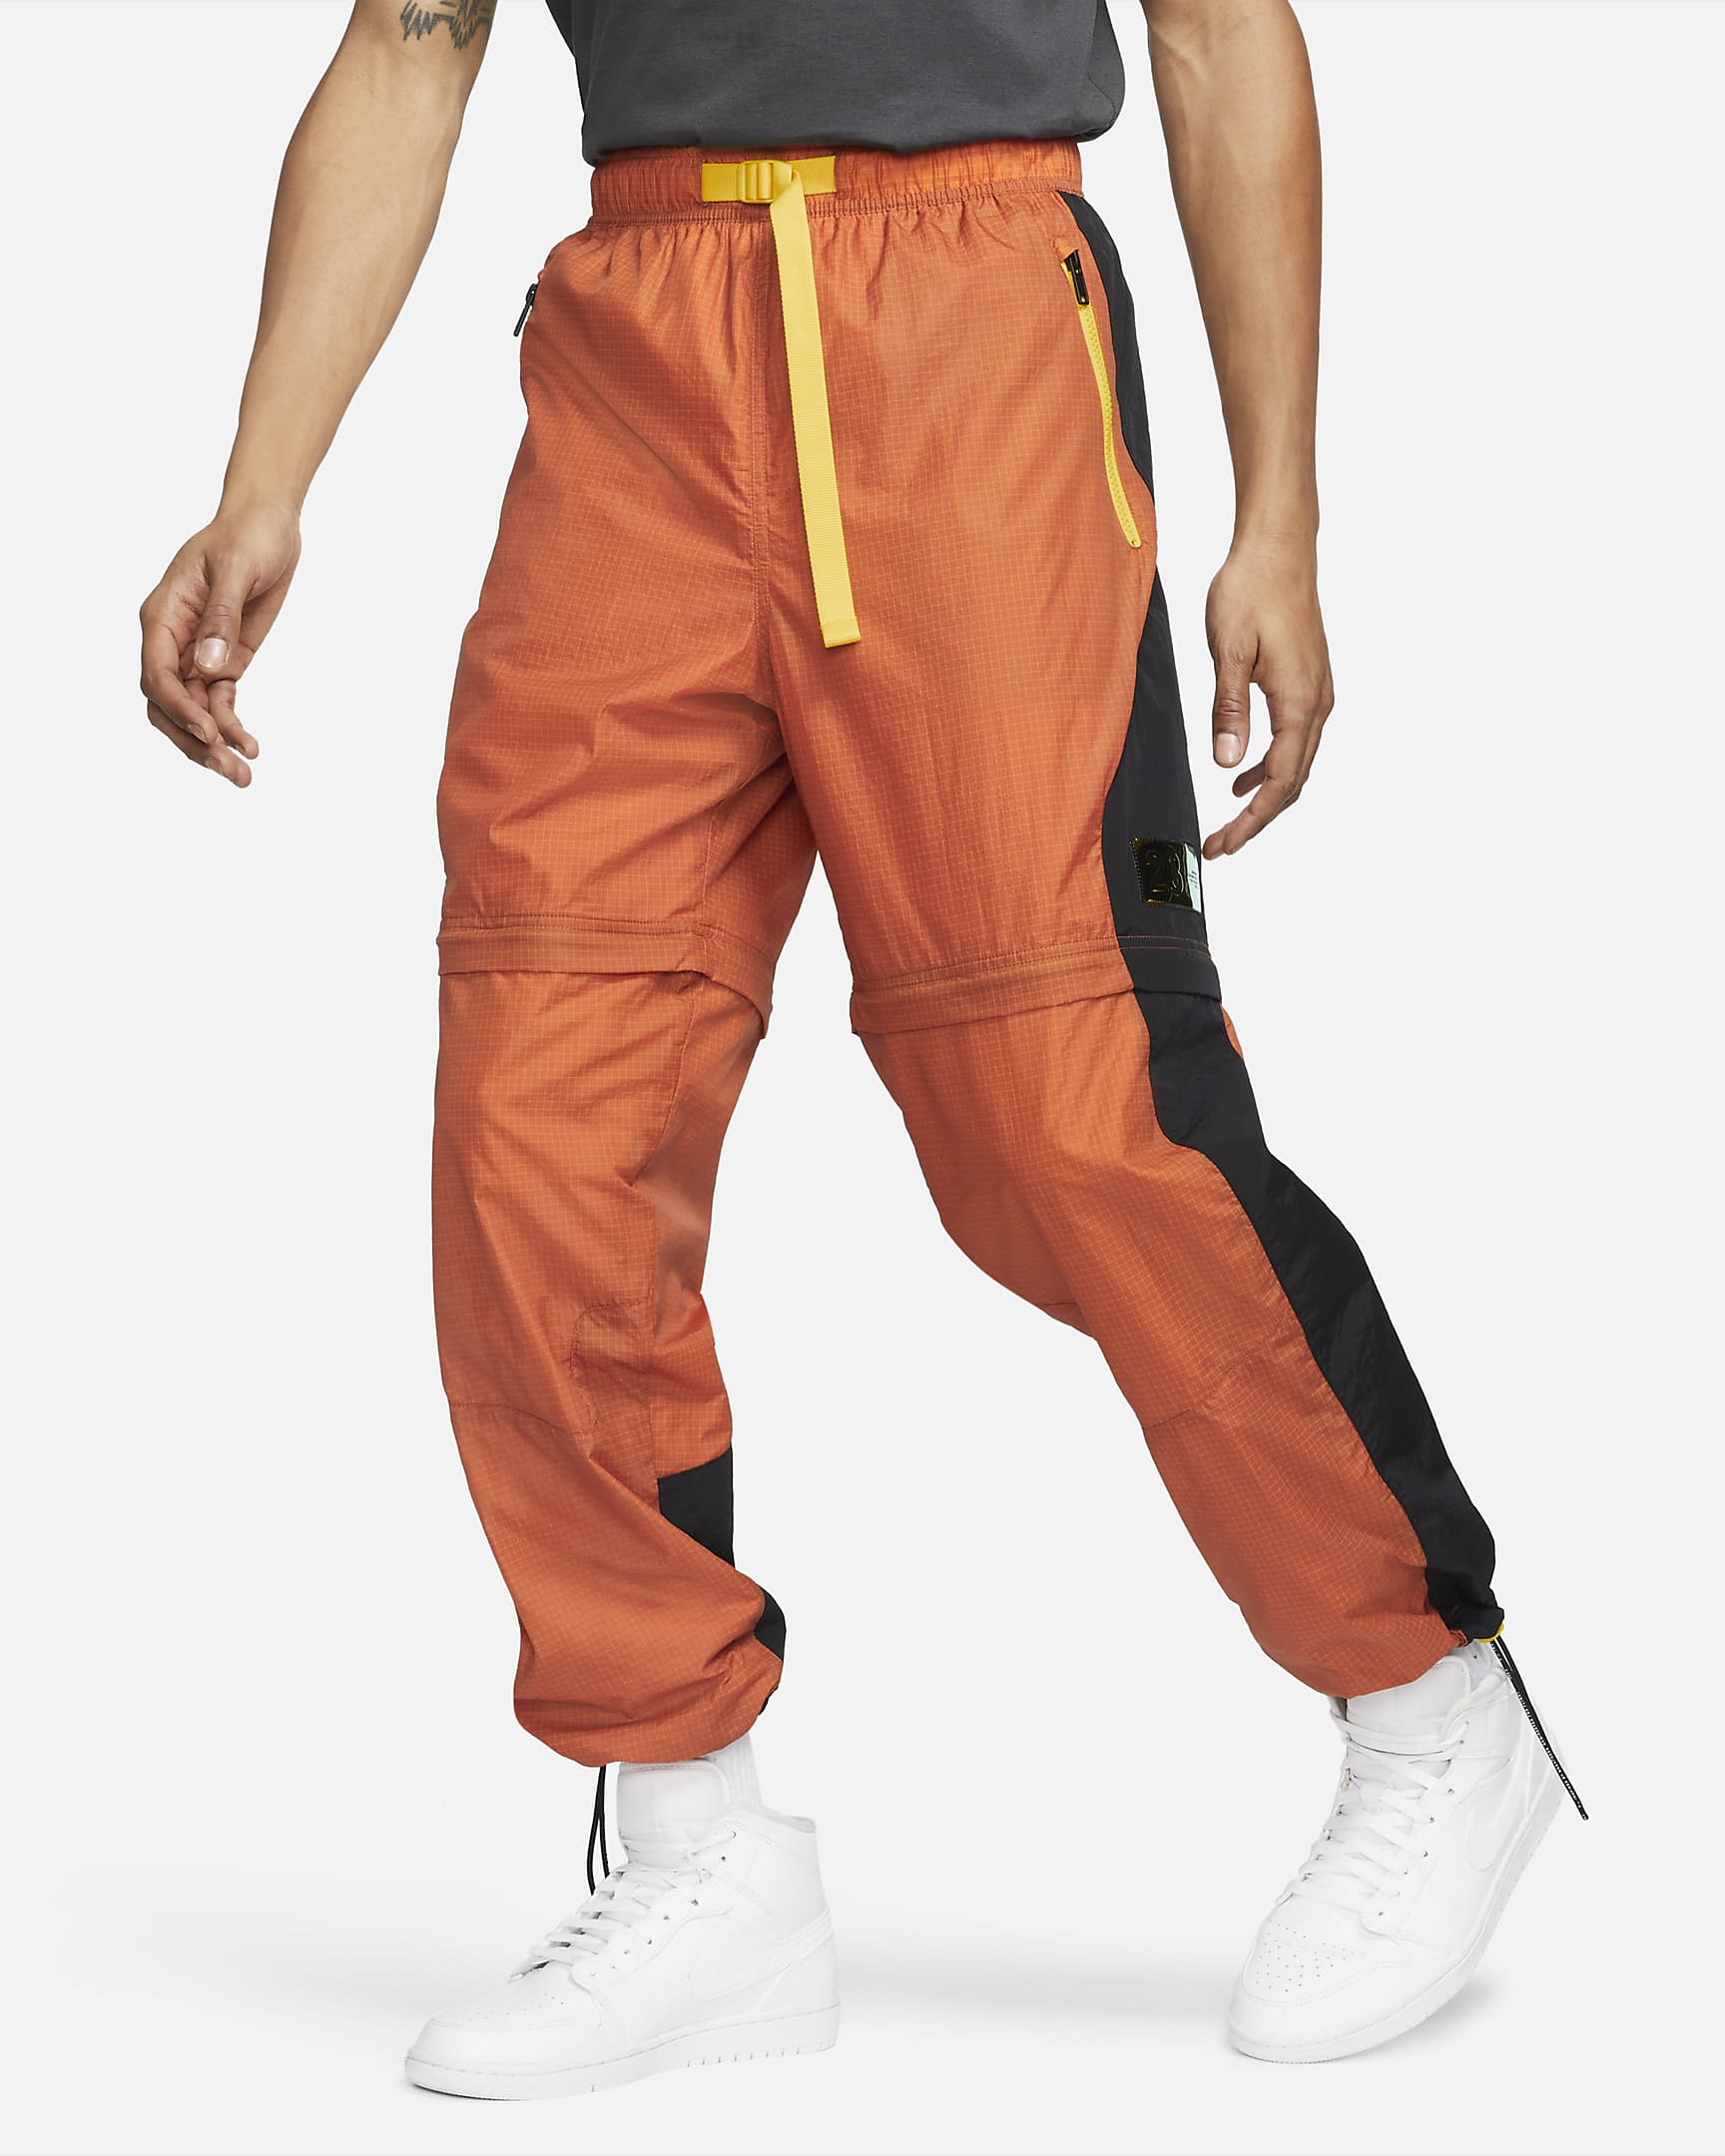 jordan-23-engineered-mens-convertible-track-pants-zWp7wJ-2